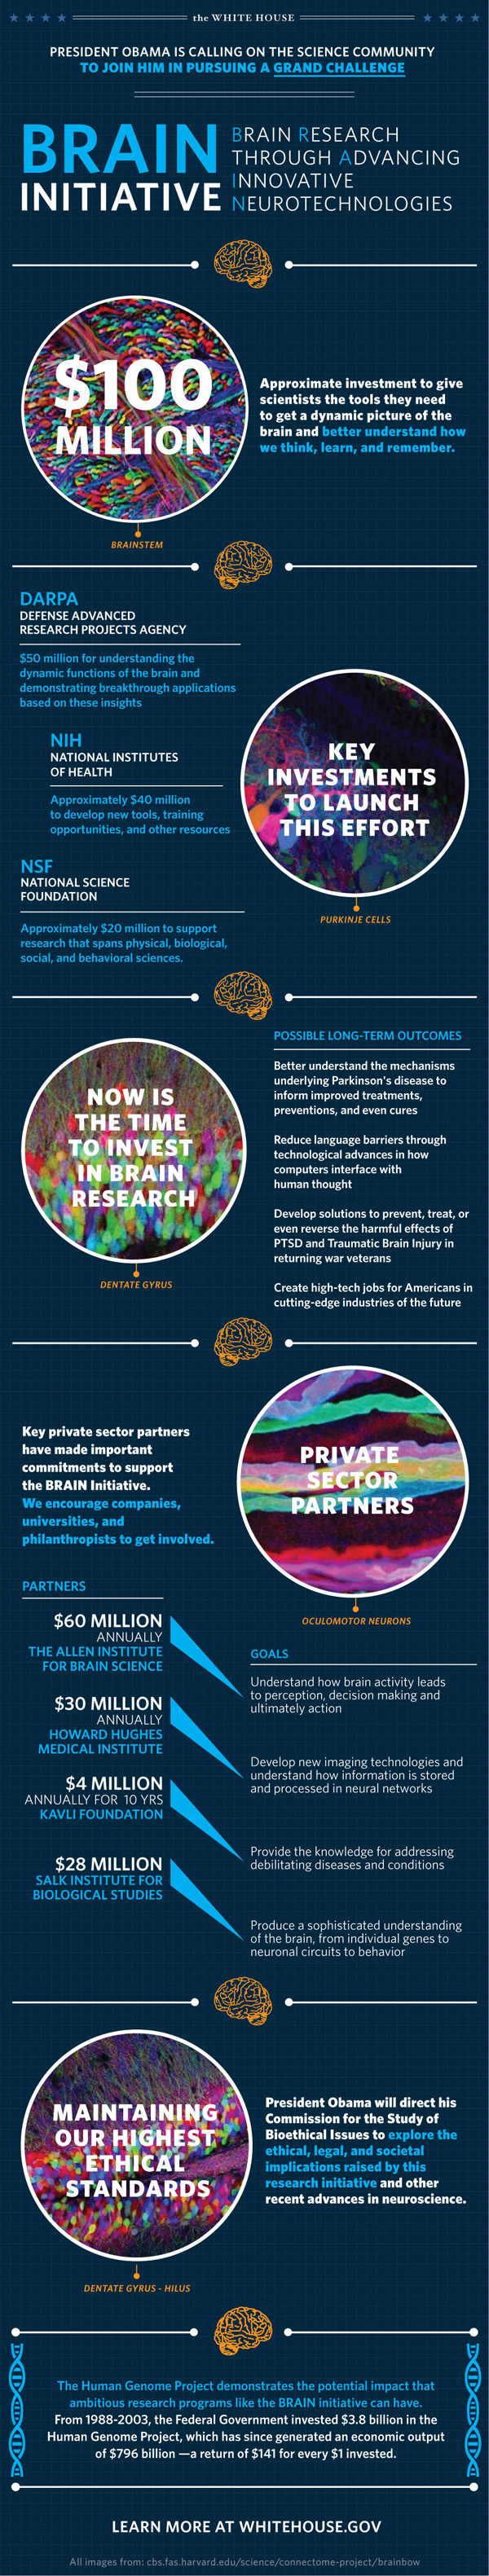 BRAIn research initiative